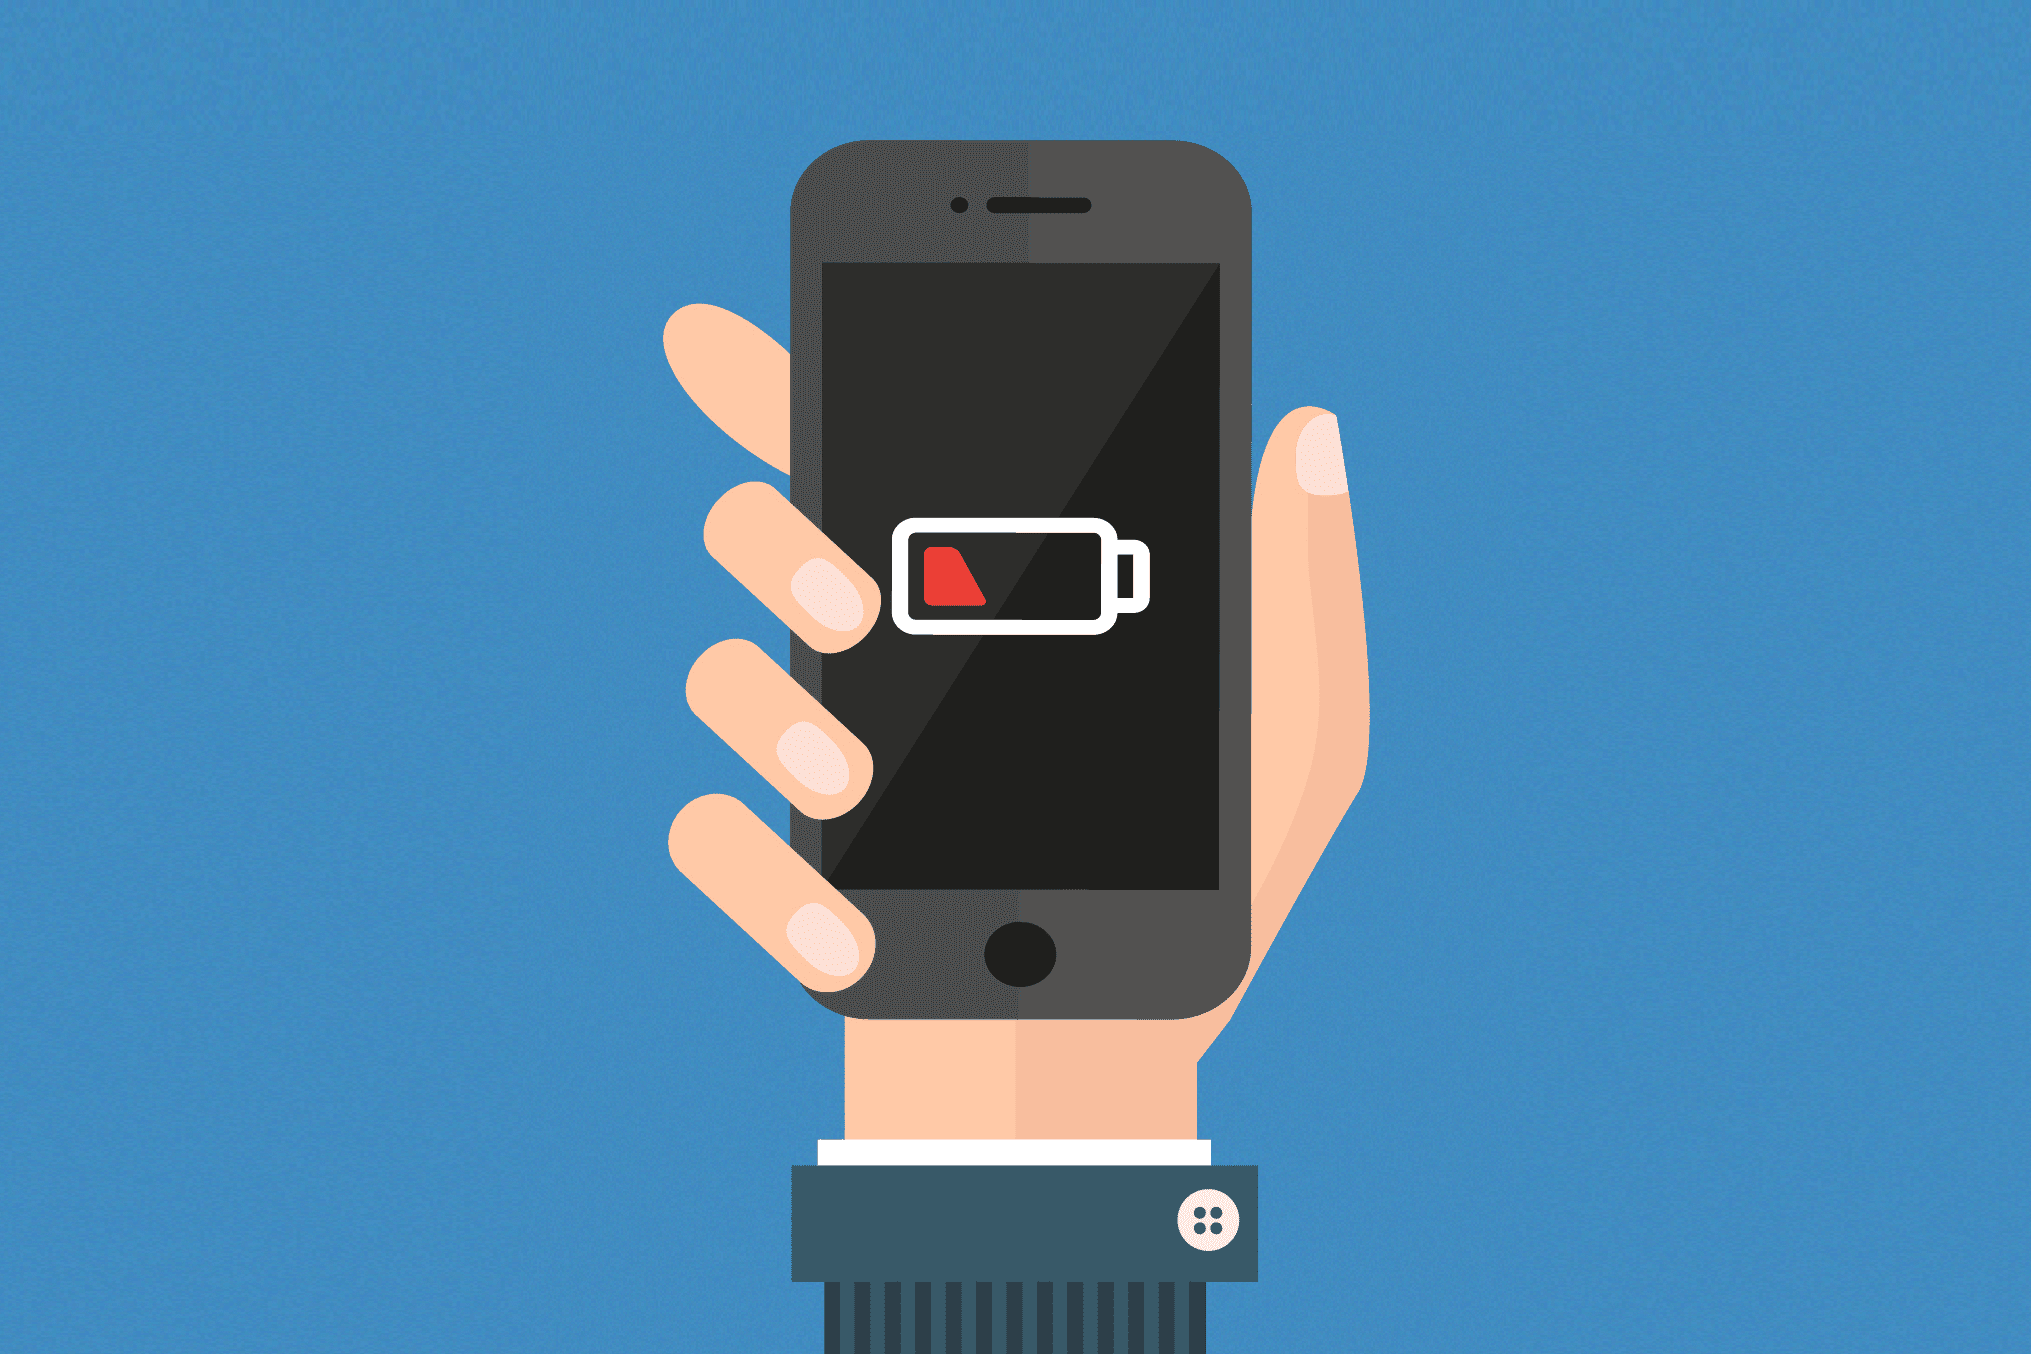 Illustration of a low battery indicator on a phone